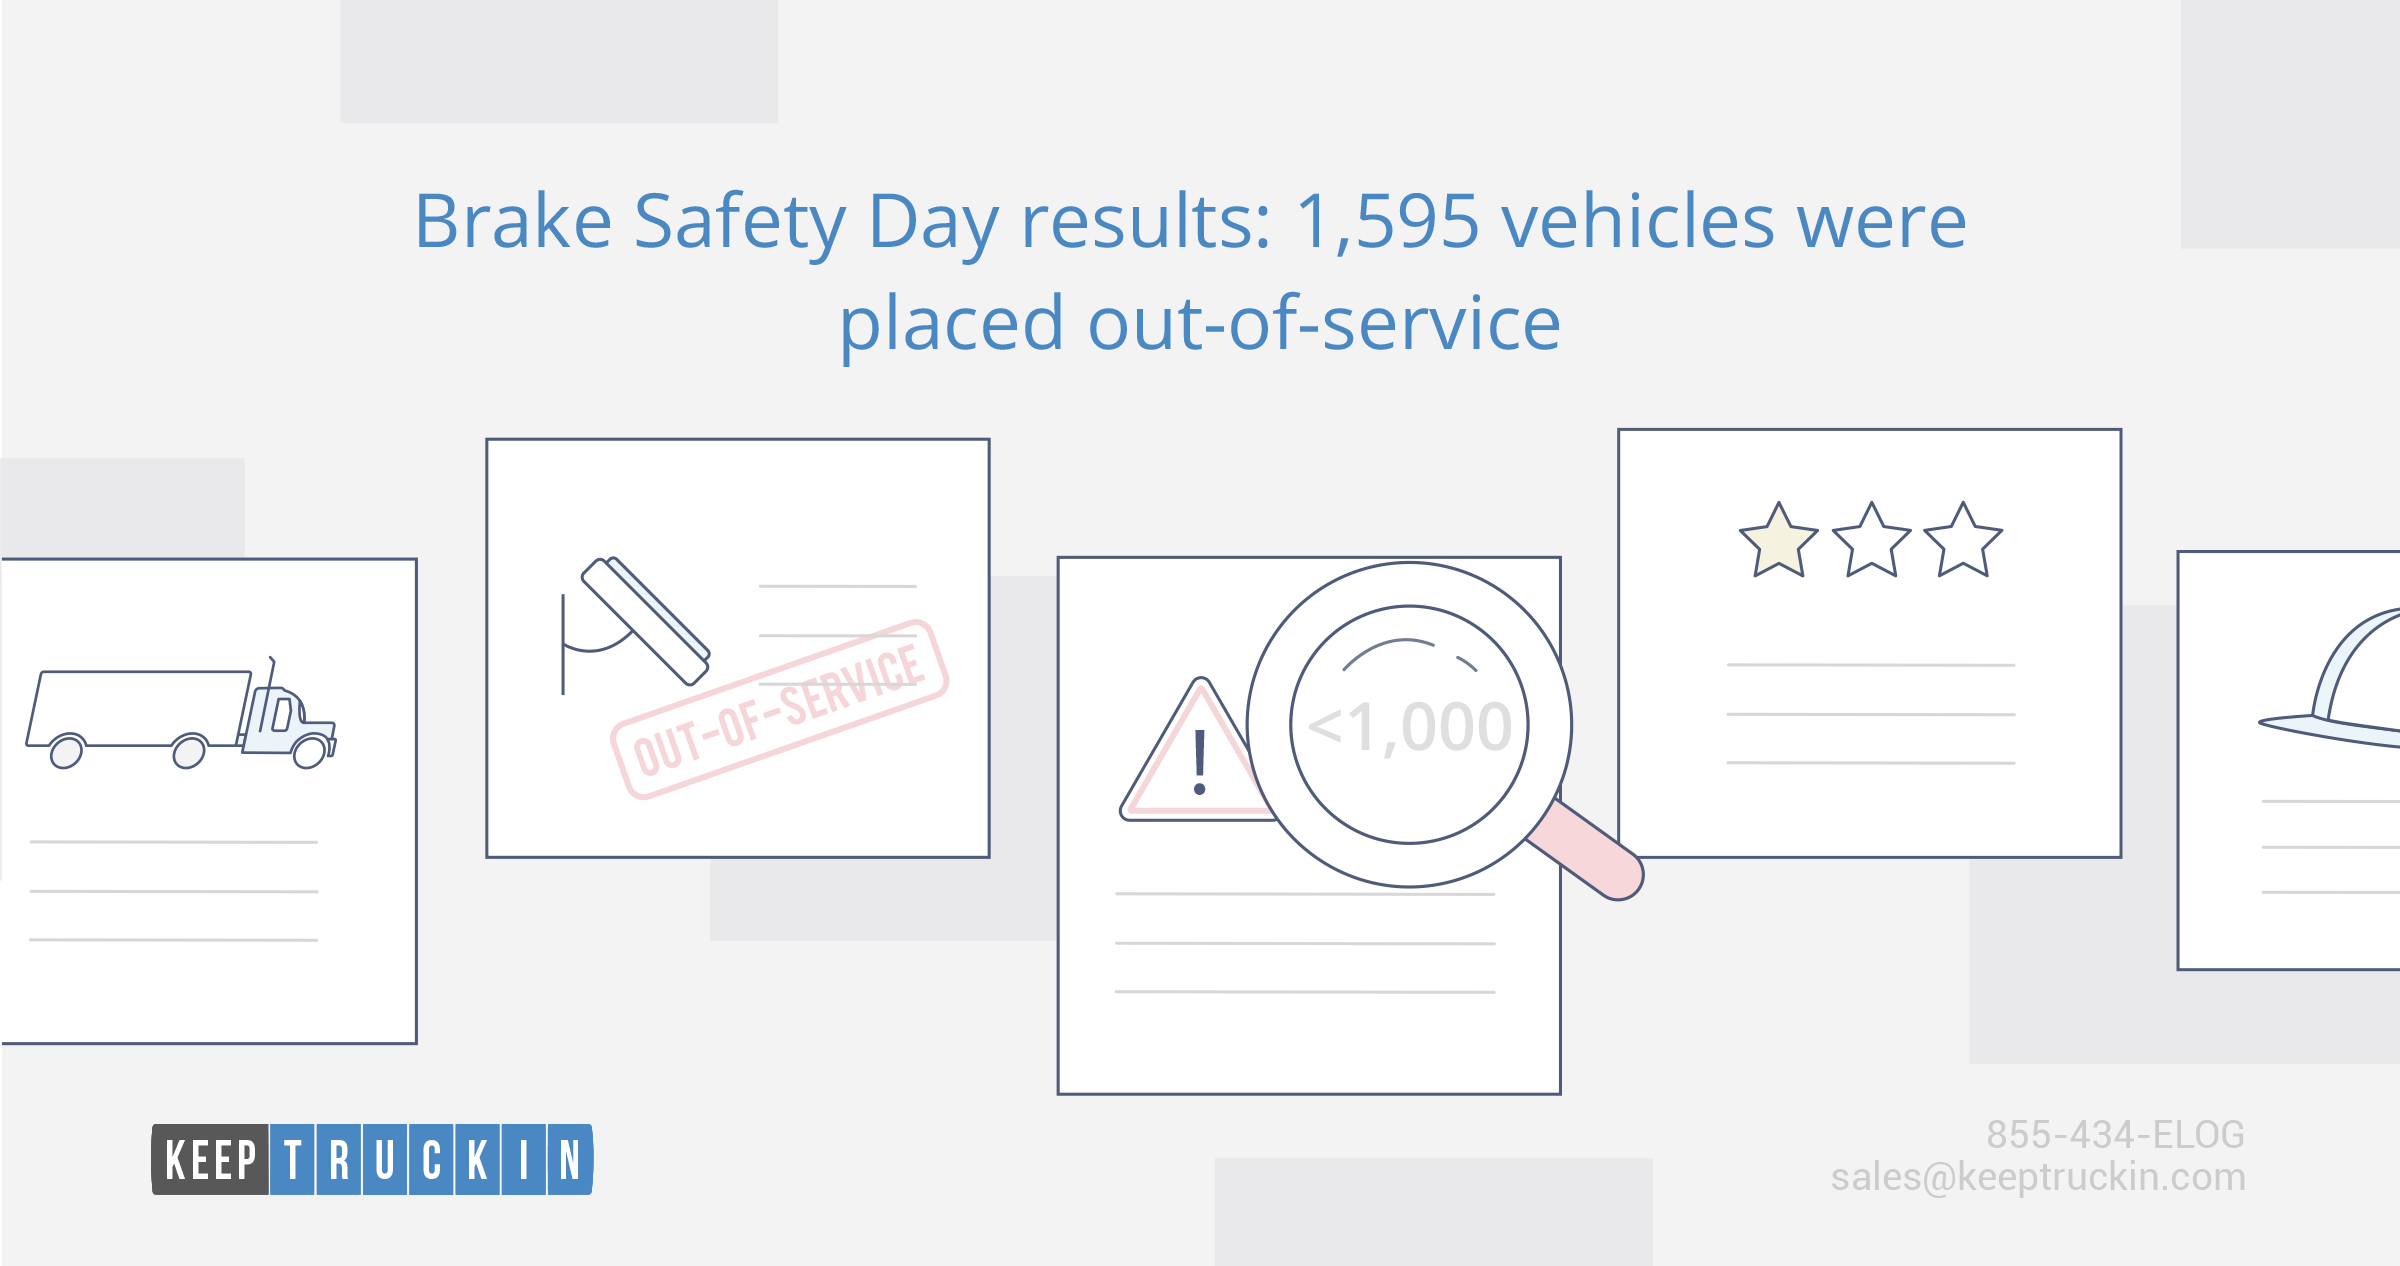 Brake Safety Day results: 1,595 vehicles were placed out-of-service